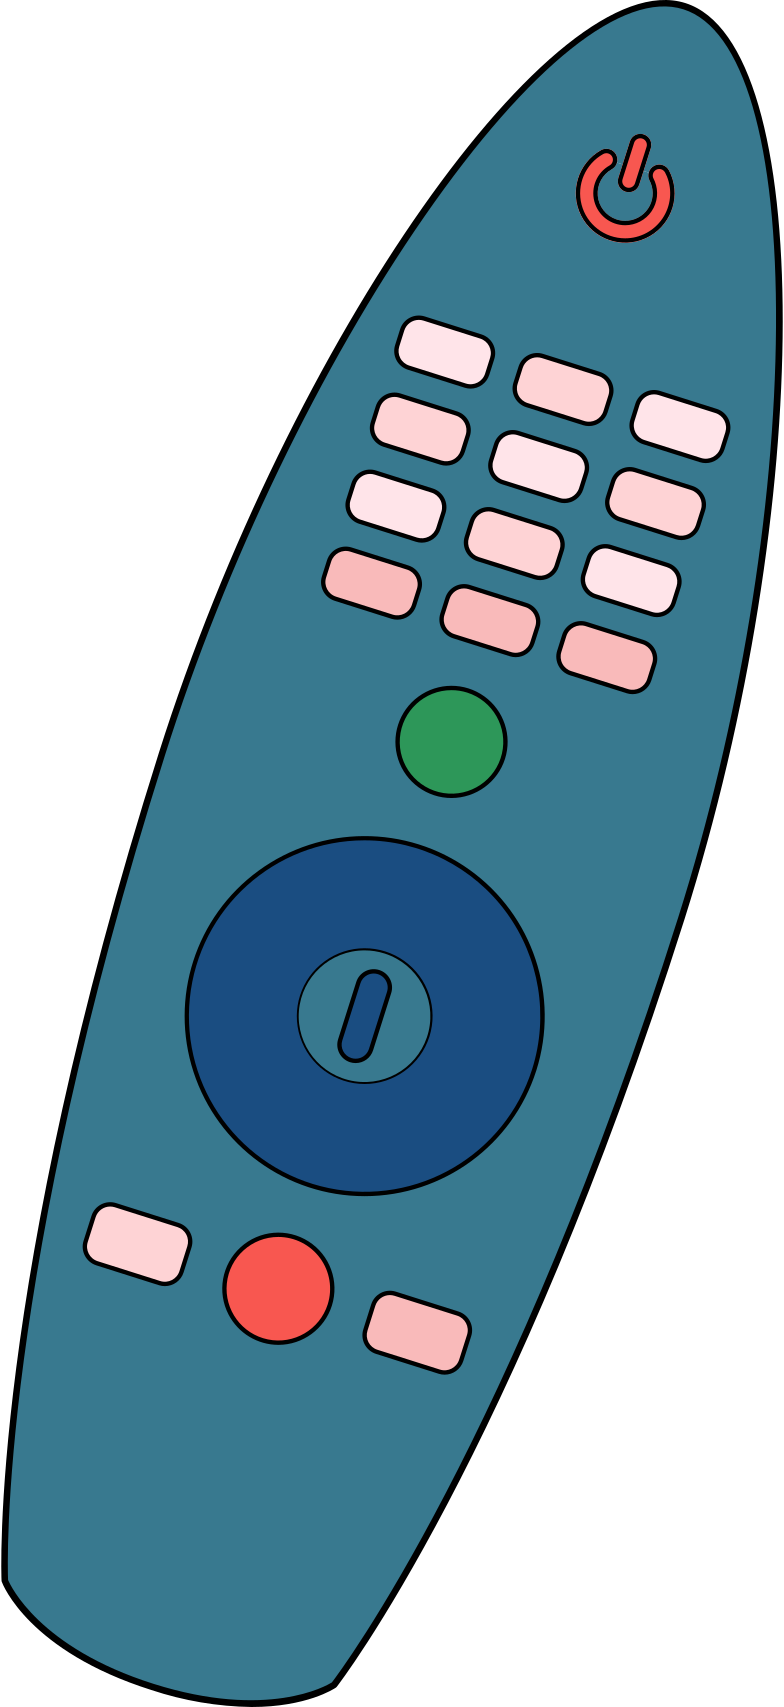 magic remote Clipart illustration in PNG, SVG